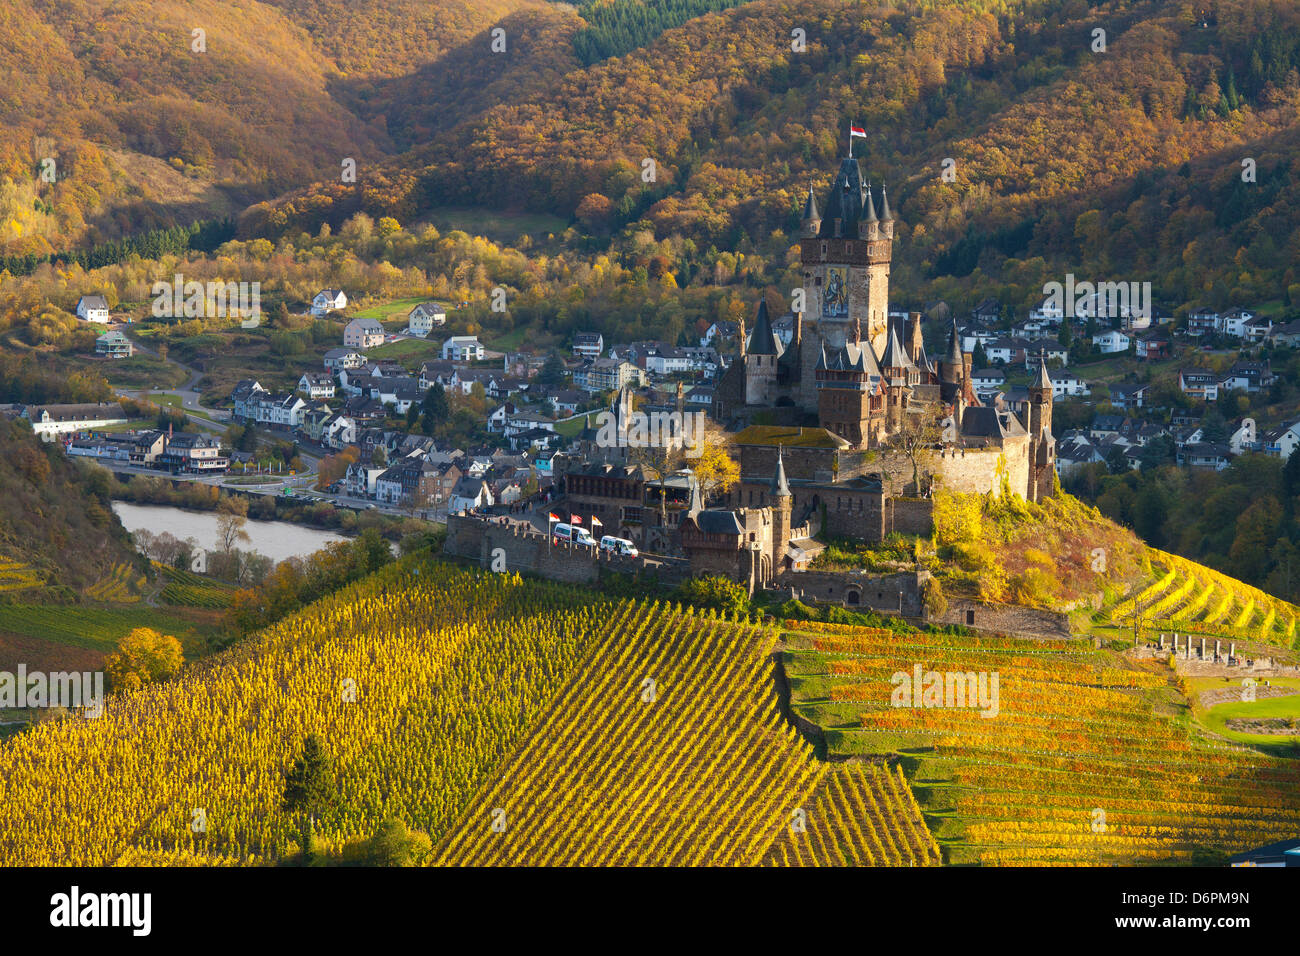 View over Cochem Castle and the Mosel River Valley in autumn, Cochem, Rheinland-Pfalz (Rhineland-Palatinate), Germany, - Stock Image